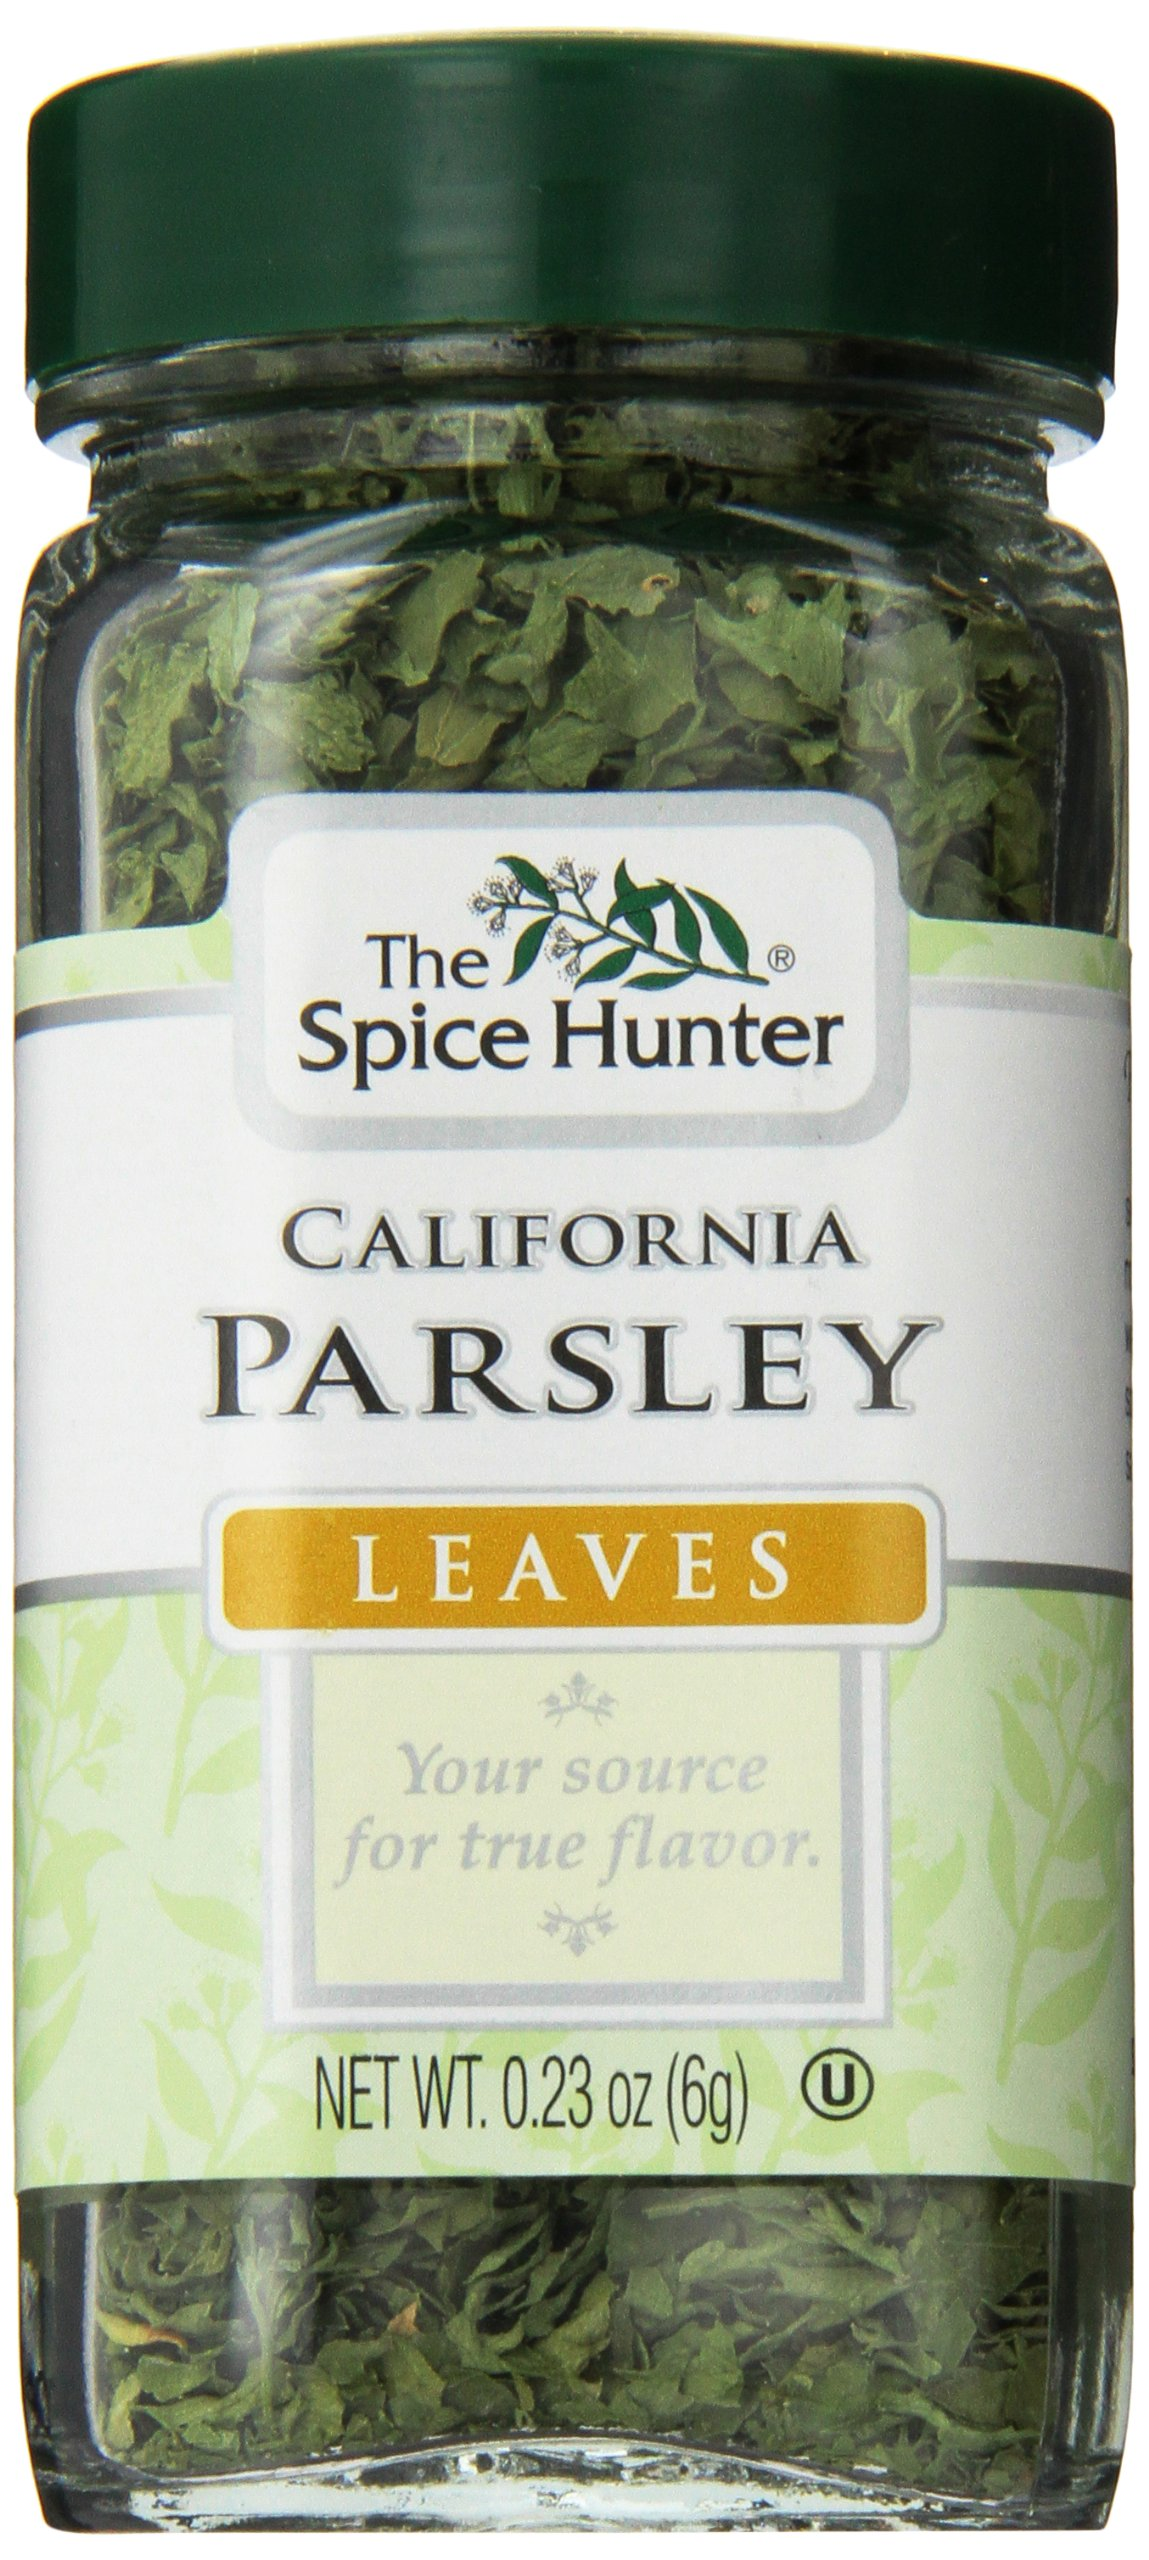 The Spice Hunter Parsley, California, Leaves, 0.23 Ounce Jar (Pack of 48)